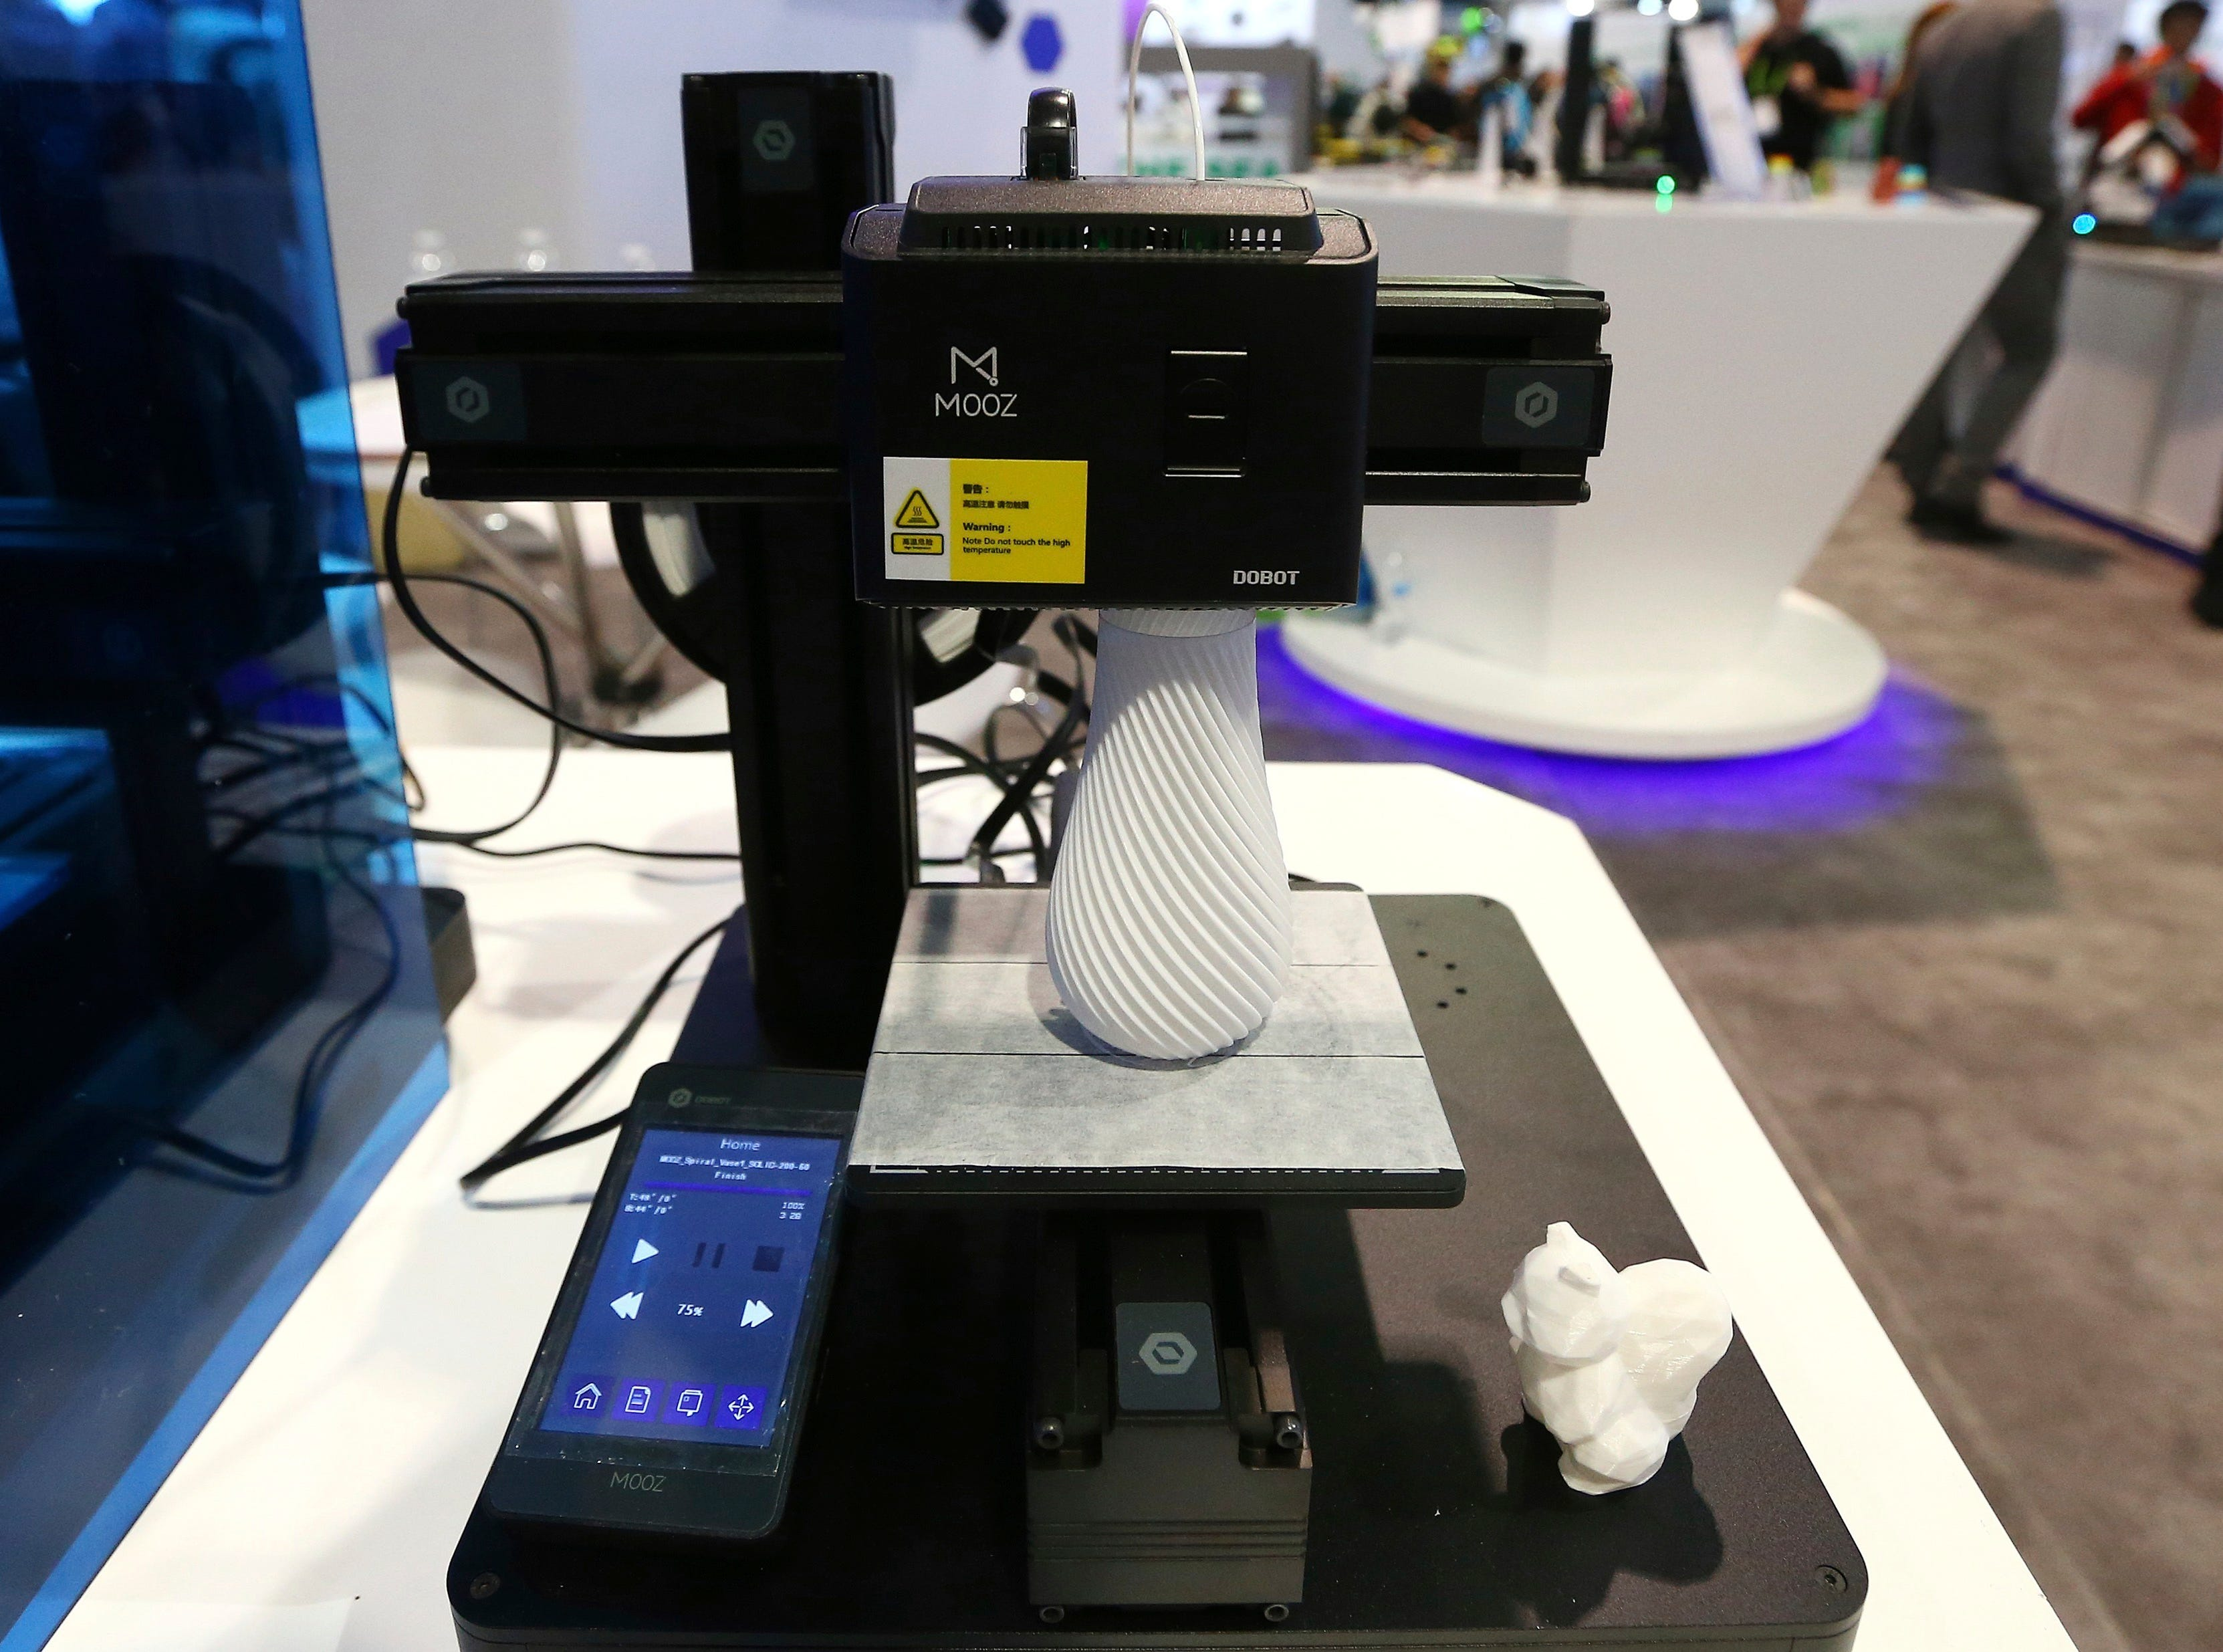 The Dobot Mooz multifunctional modular 3D printer works on a new project at CES International on Wednesday, Jan. 9, 2019, in Las Vegas.